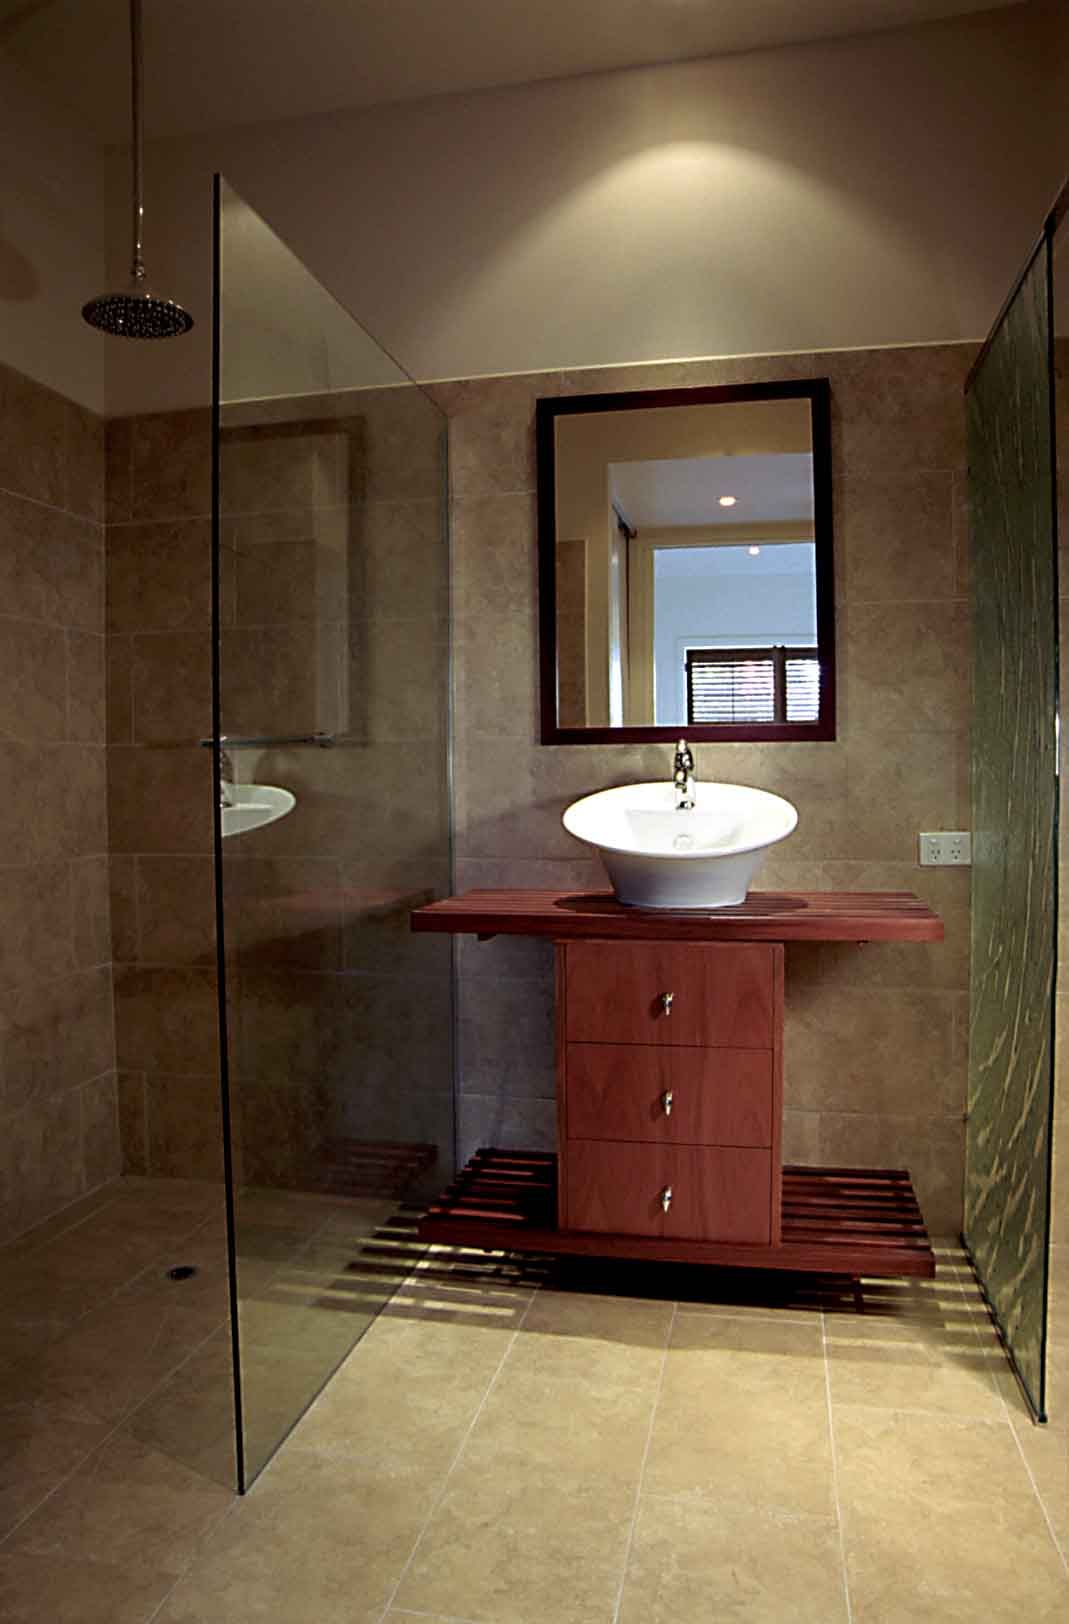 wet room design for small bathrooms | small ensuite bathroom